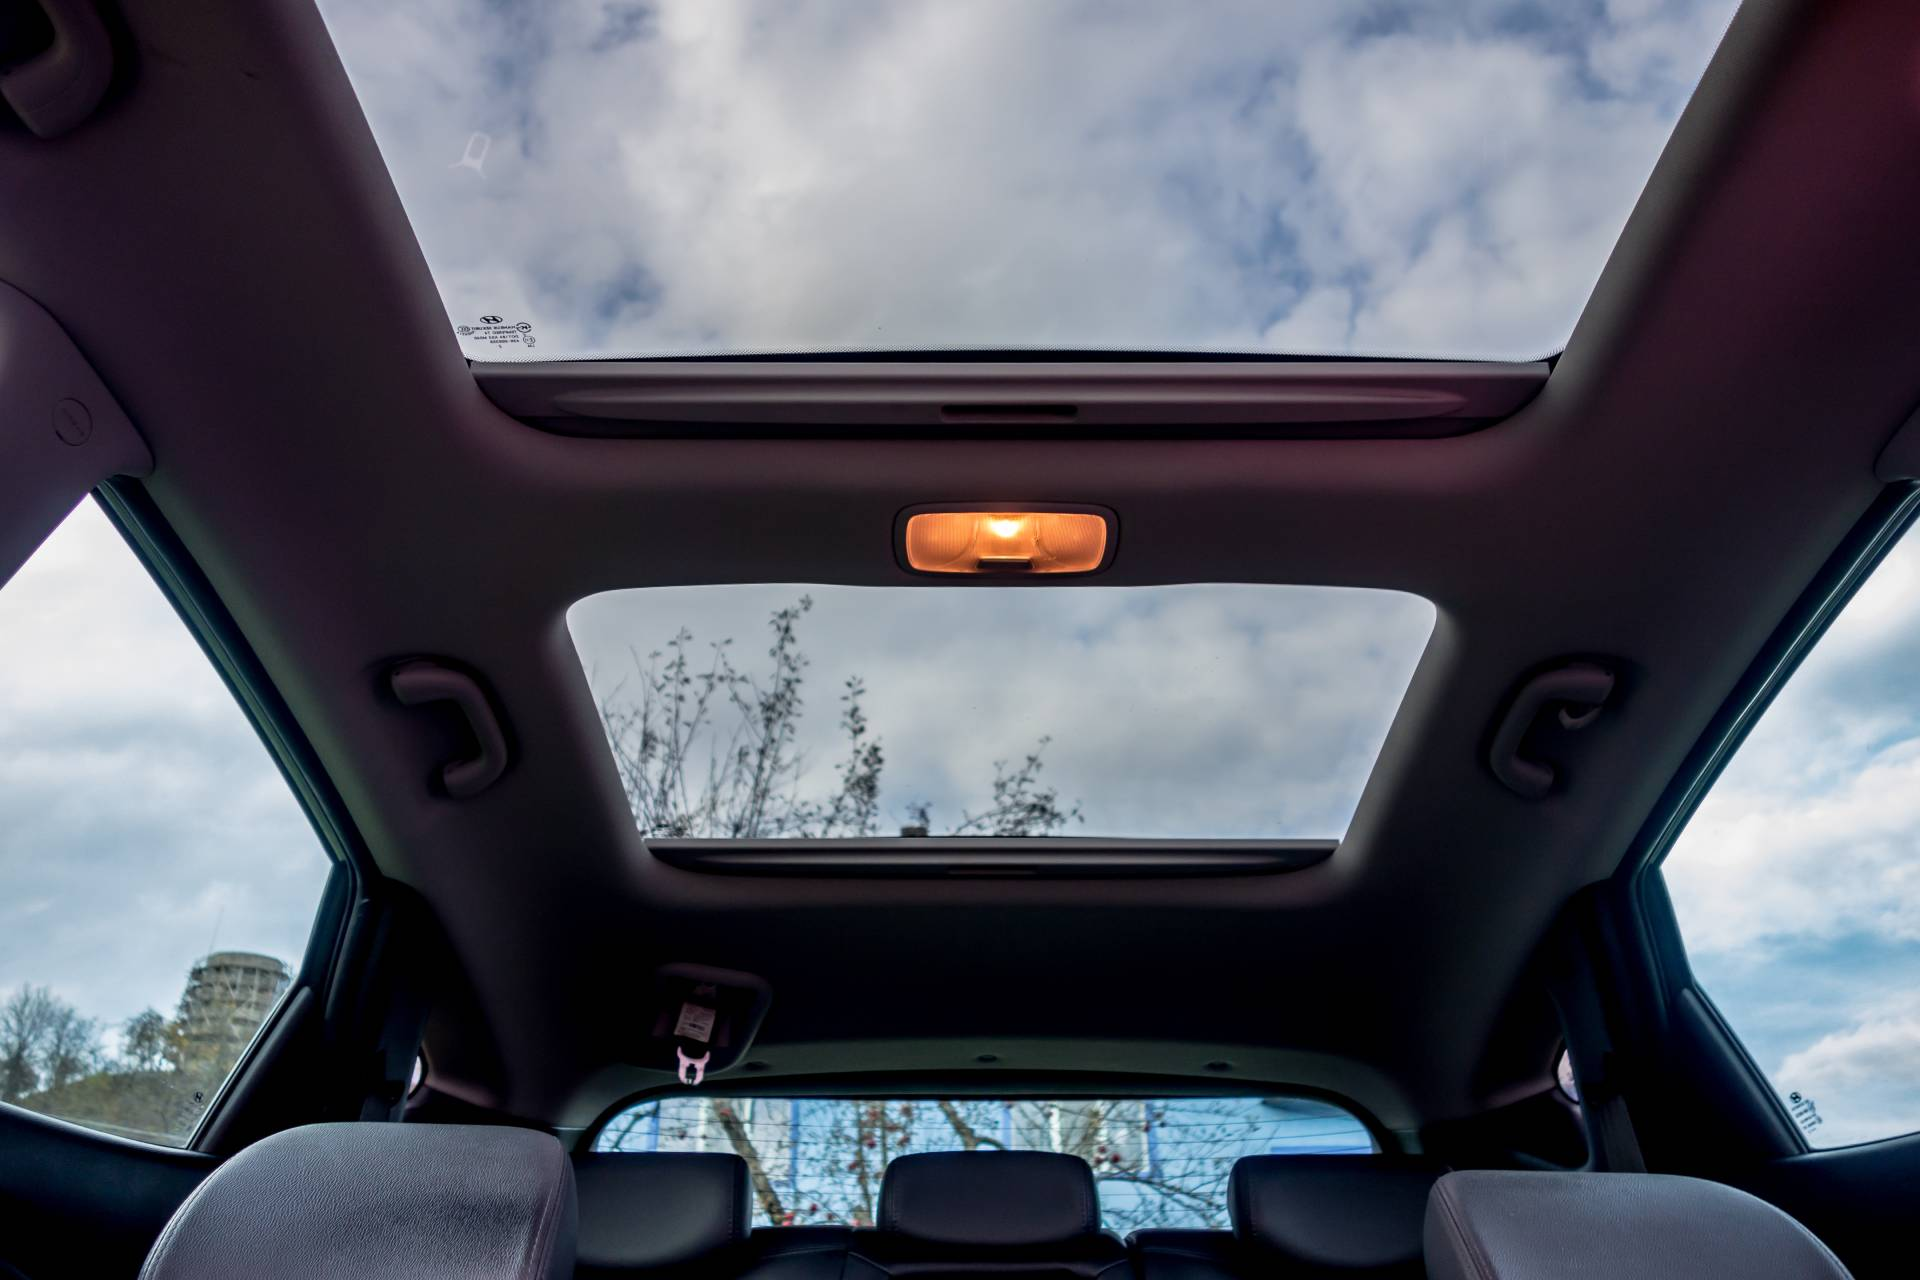 Repairs and replacements from Auto Sunroof and Trimming Services.